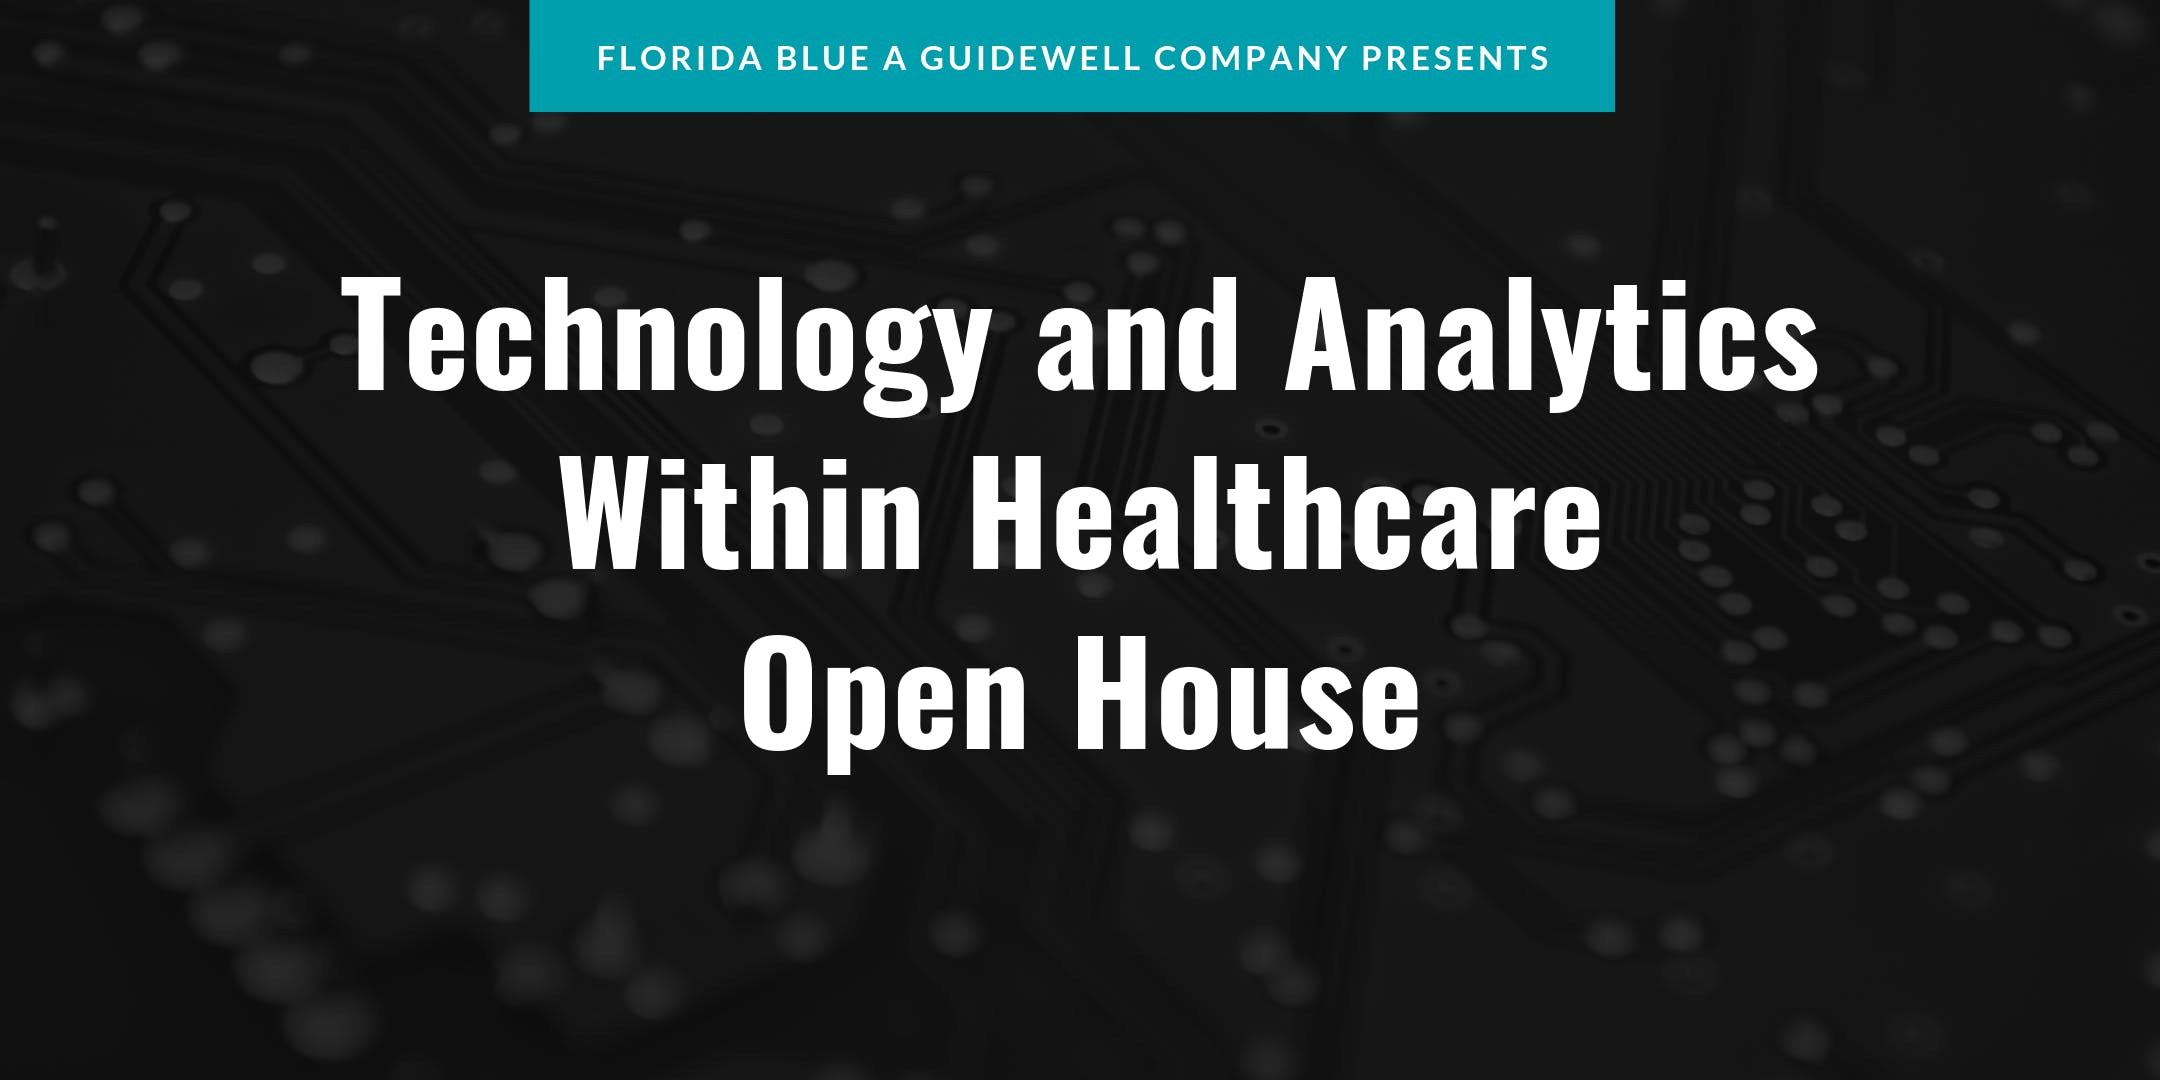 Florida Blue Open House - Technology & Analytics within Healthcare